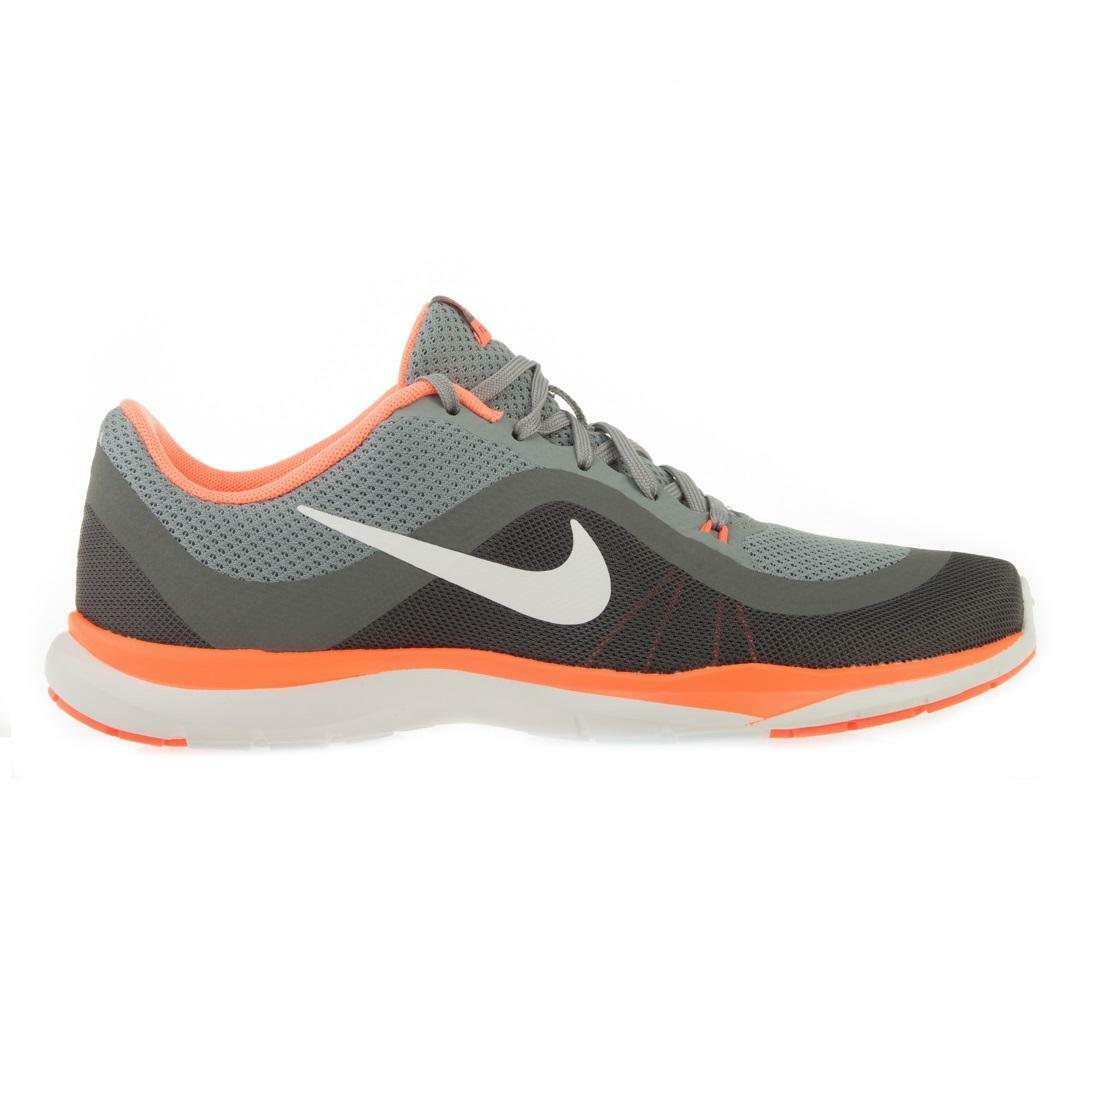 Womens NIKE FLEX TRAINER 6 Stealth Running Trainers 831217 009